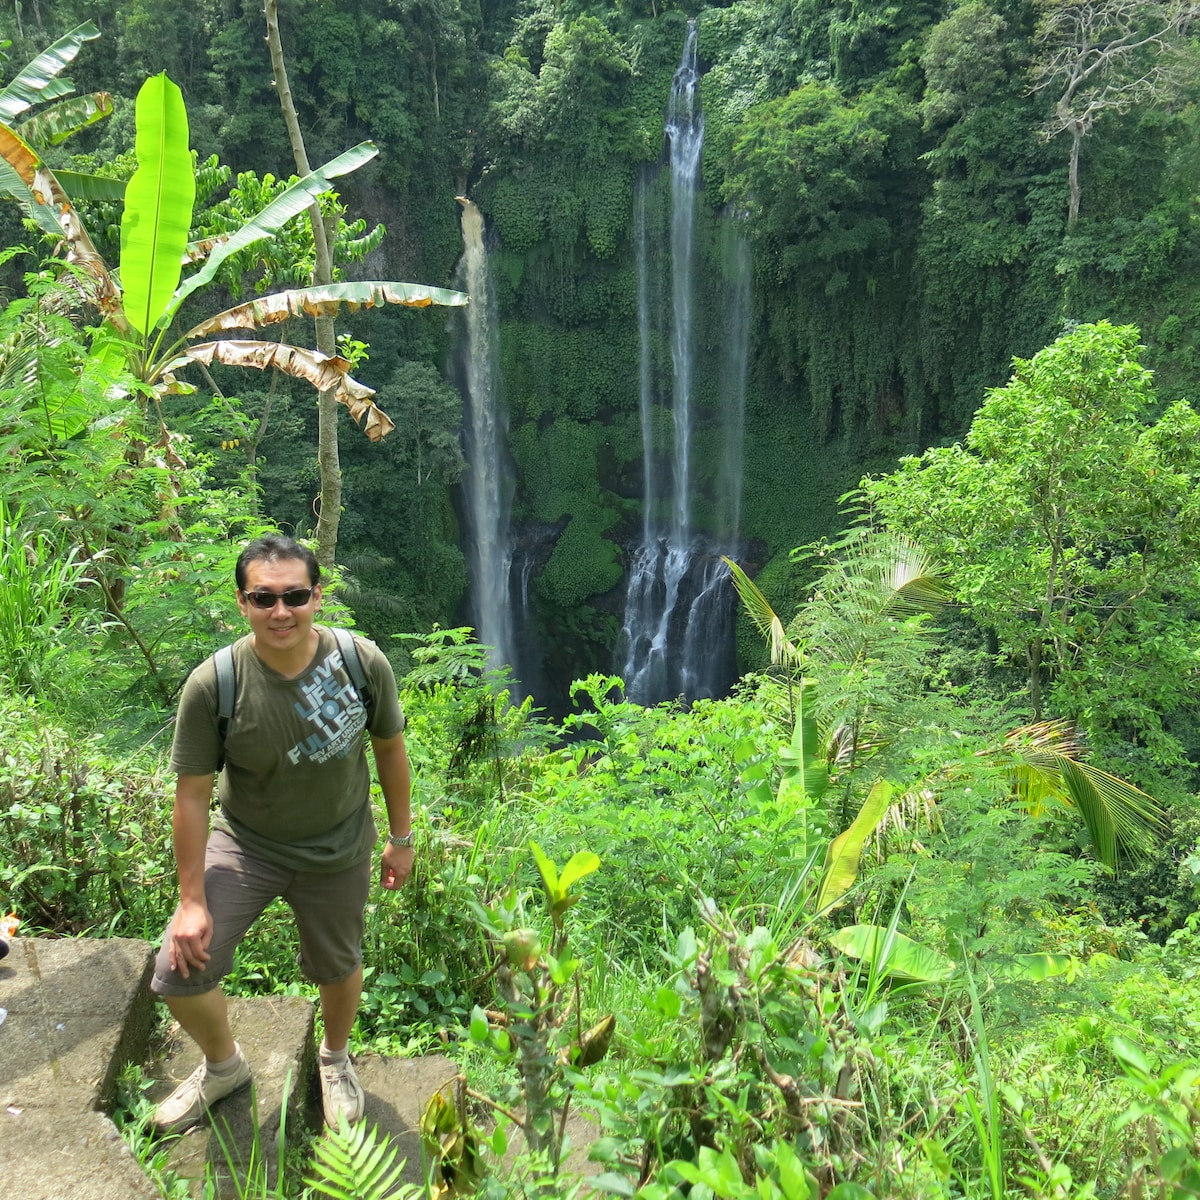 One of our recent guests Jimmy trekking to water falls.